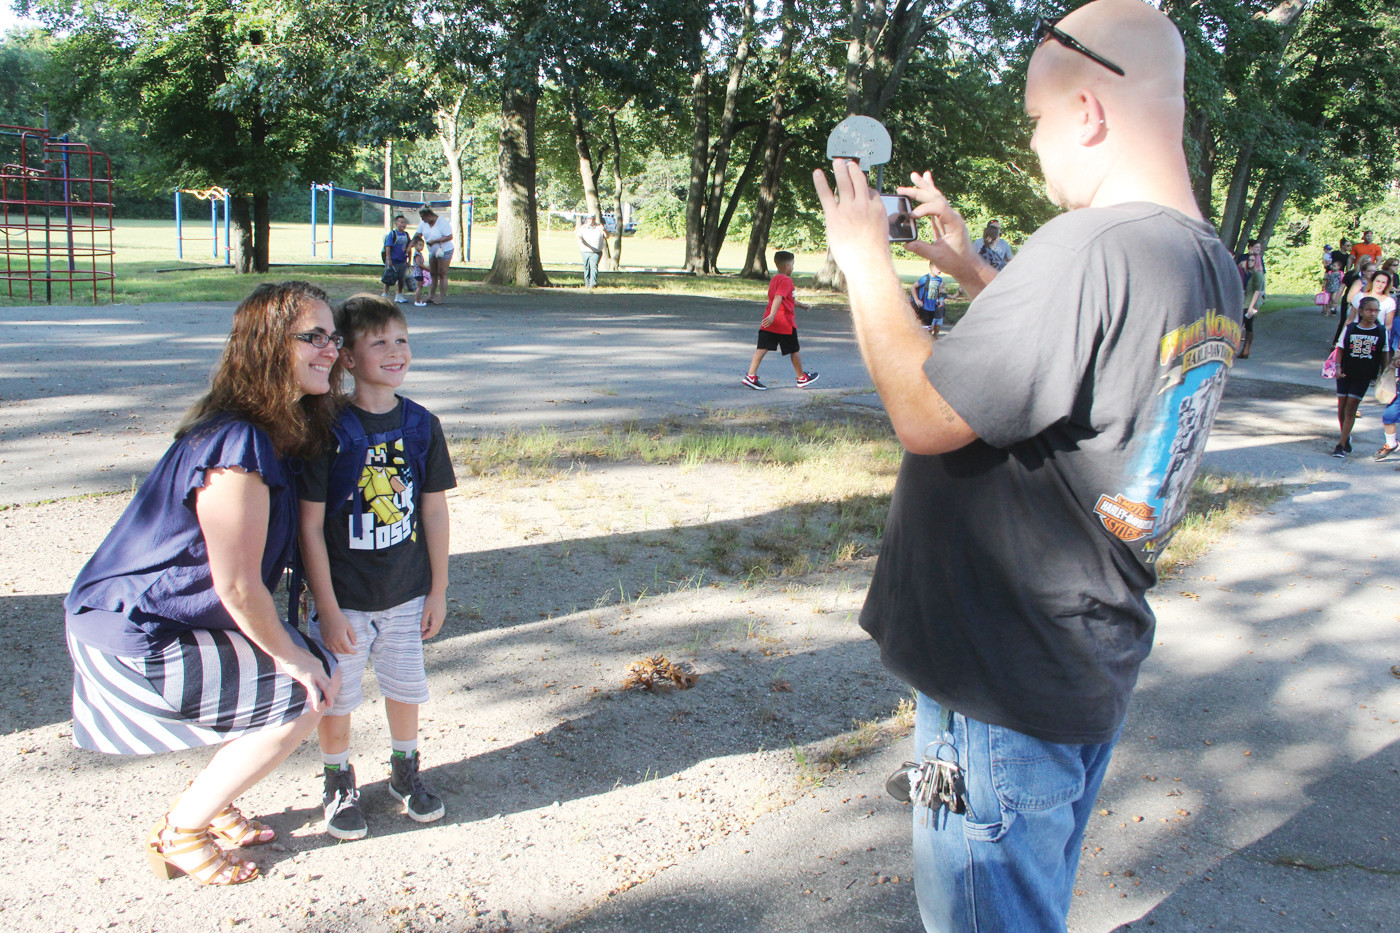 FIRST DAY MEMORIES: Chip Wardyga snaps a photo of his wife, Bethany, and son Jacob on opening day at Sherman School.